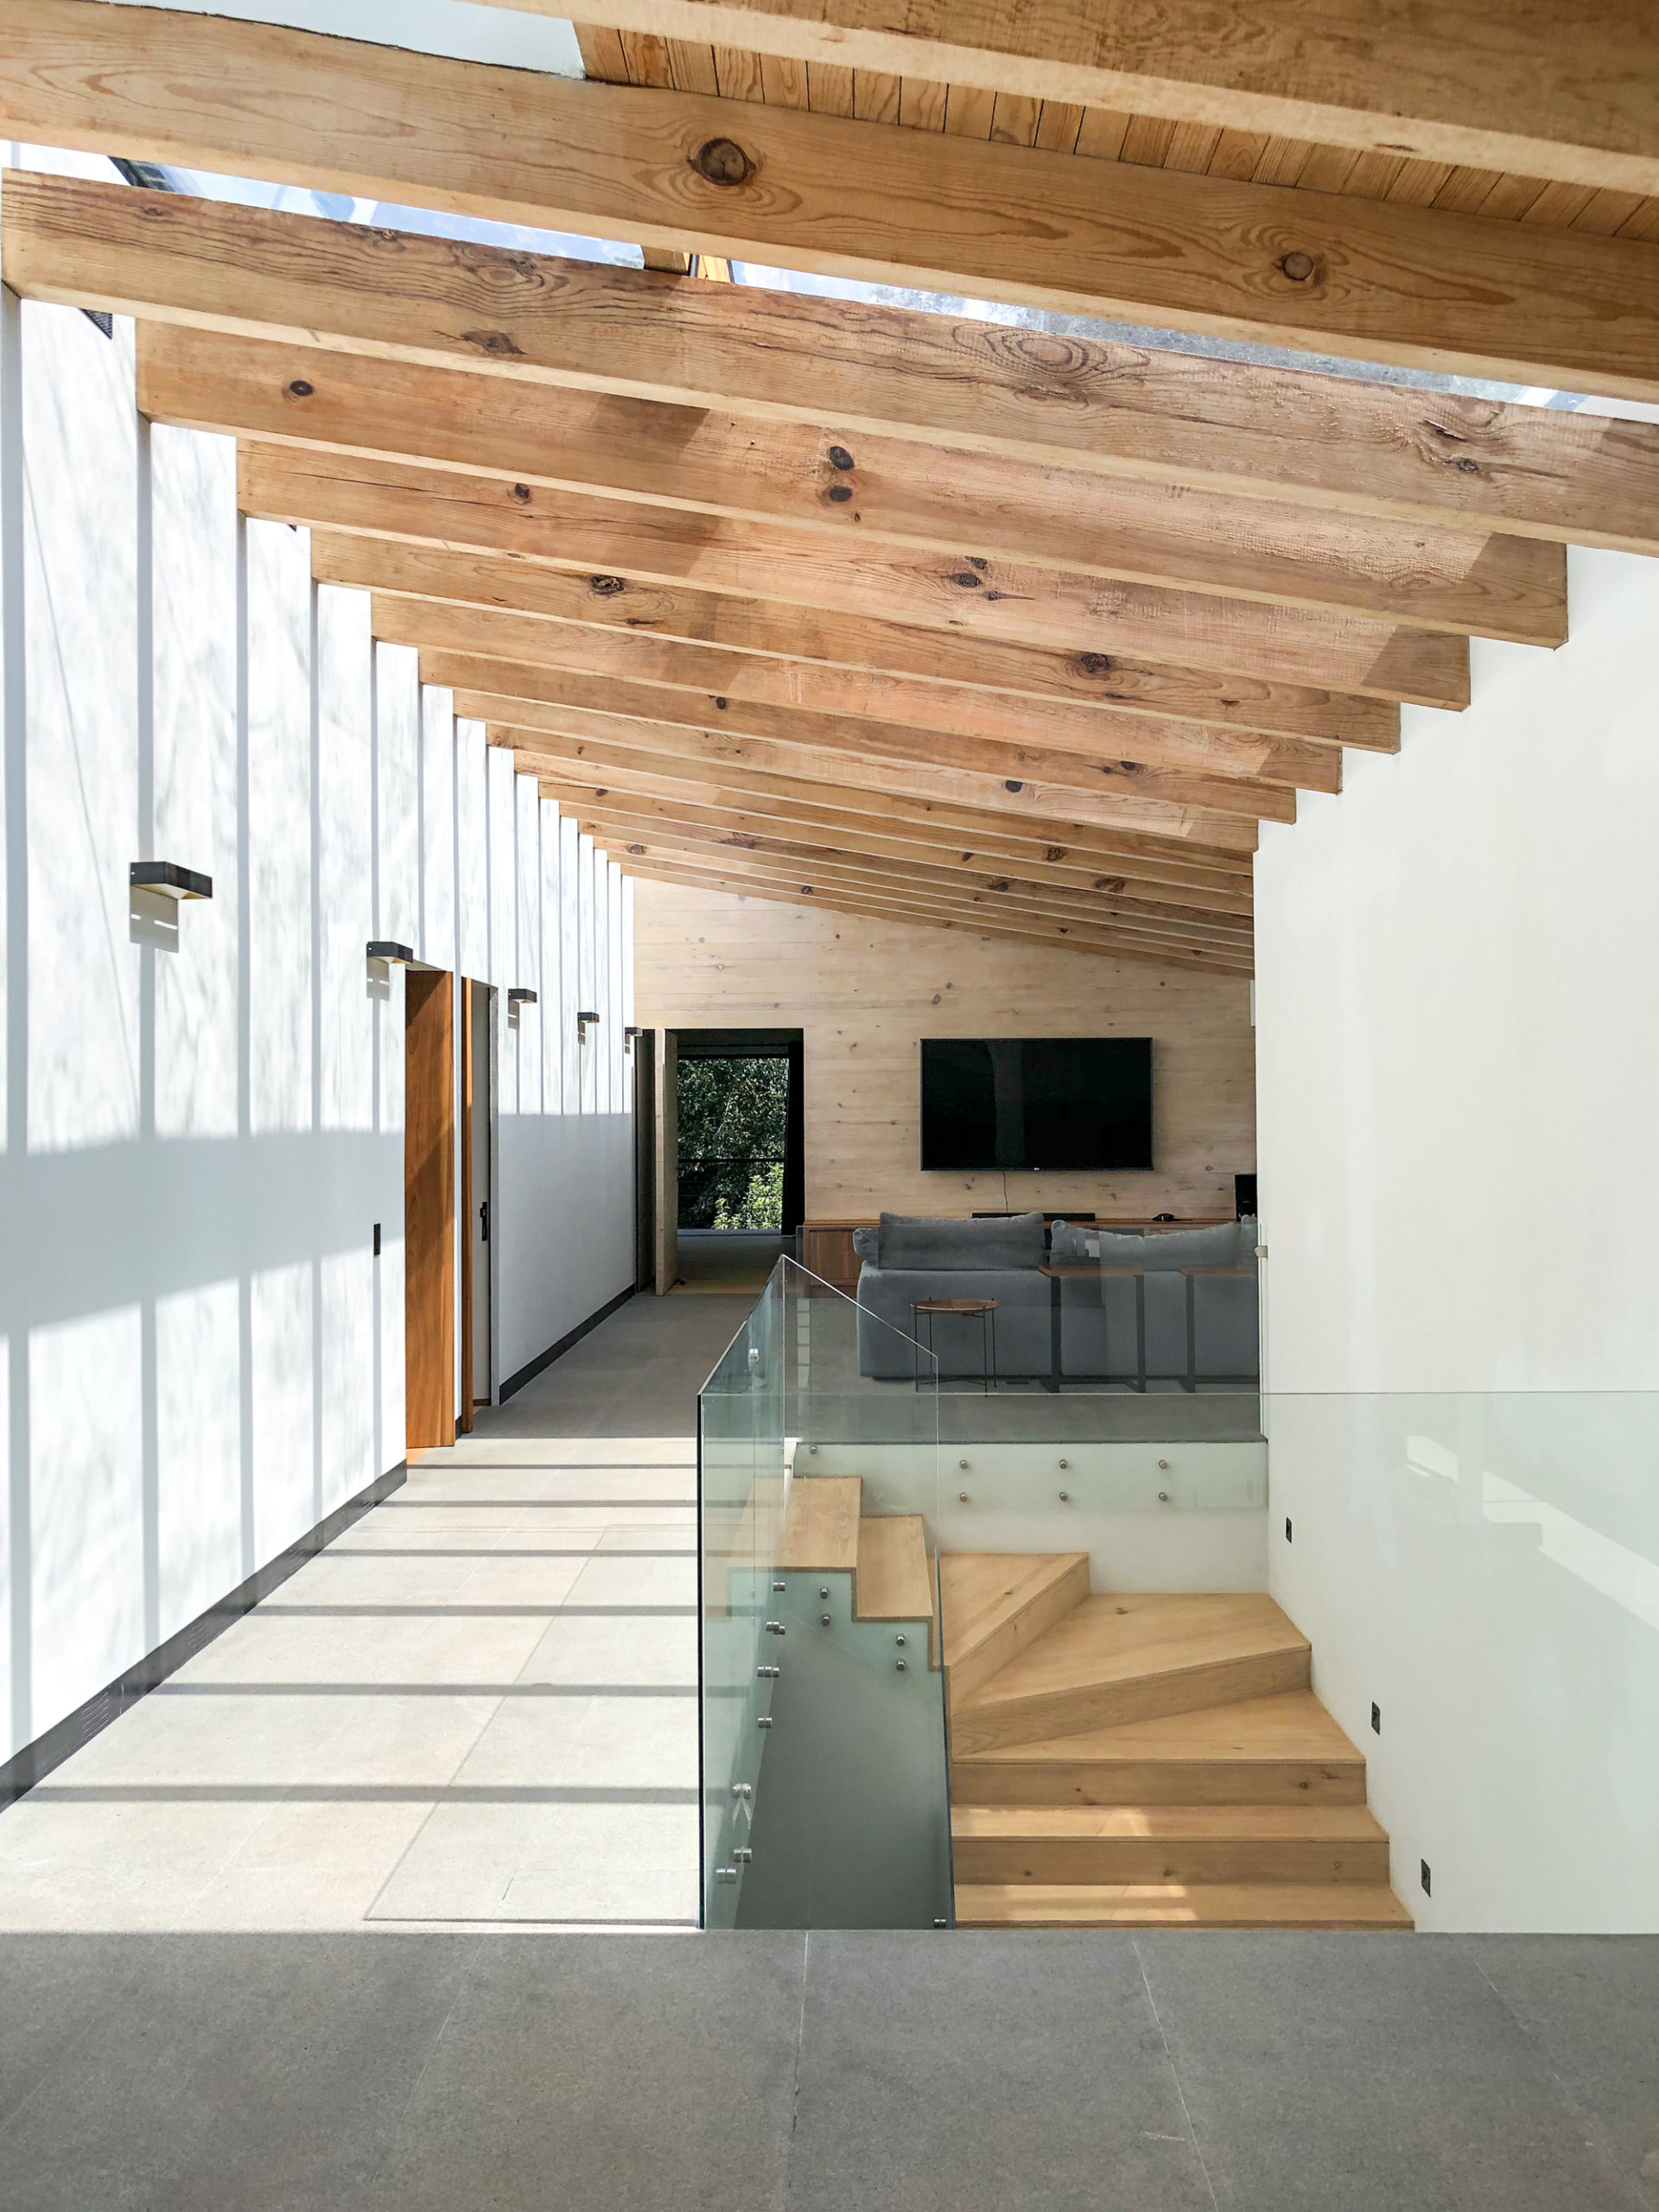 Interior of the expansive green home in Valle de Bravo draped in wood, white and glass